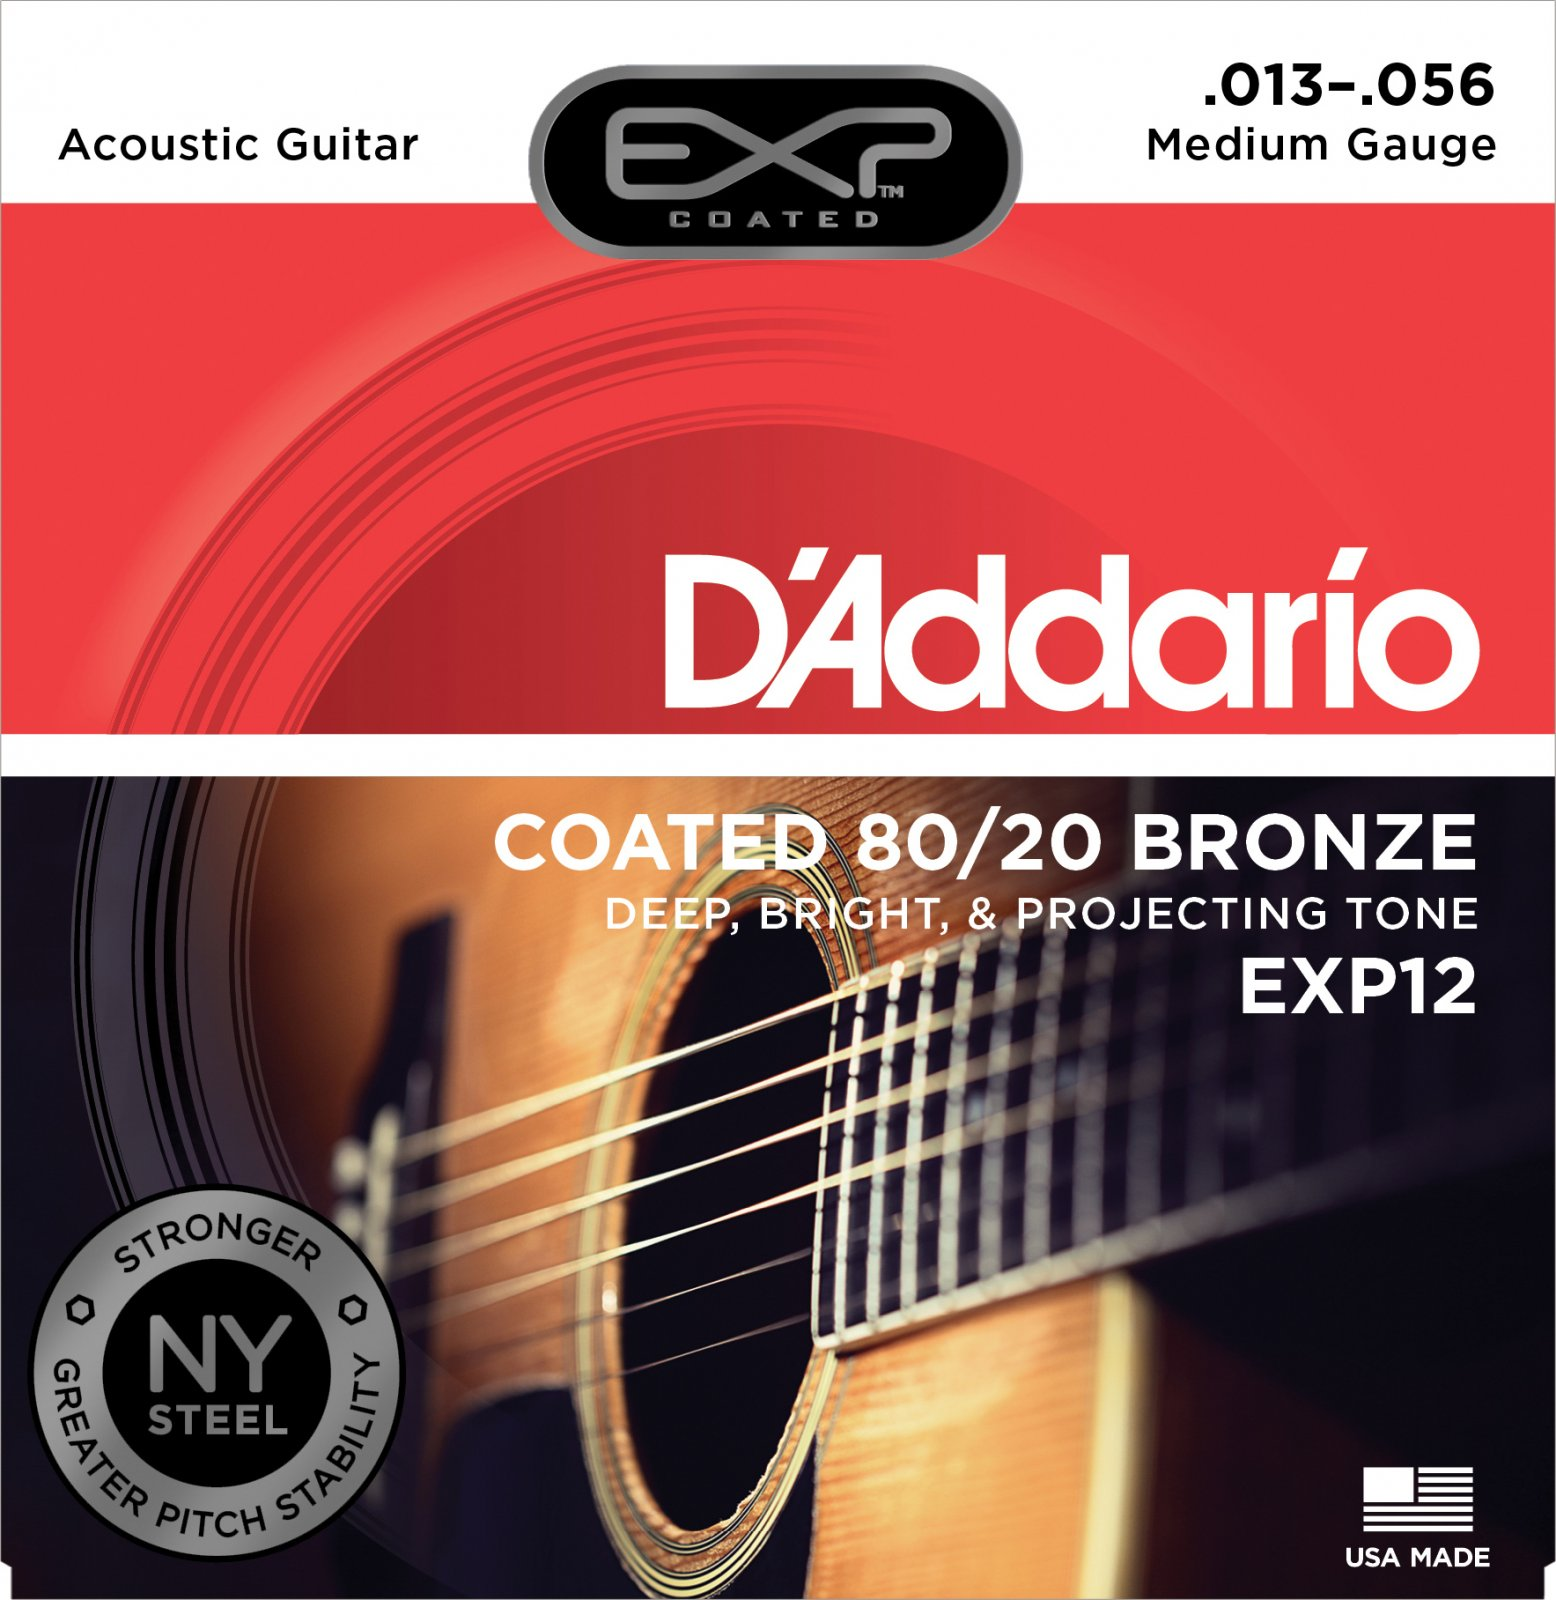 D'Addario EXP12 Coated 80/20 Bronze Acoustic Guitar Strings - Medium, 13-56